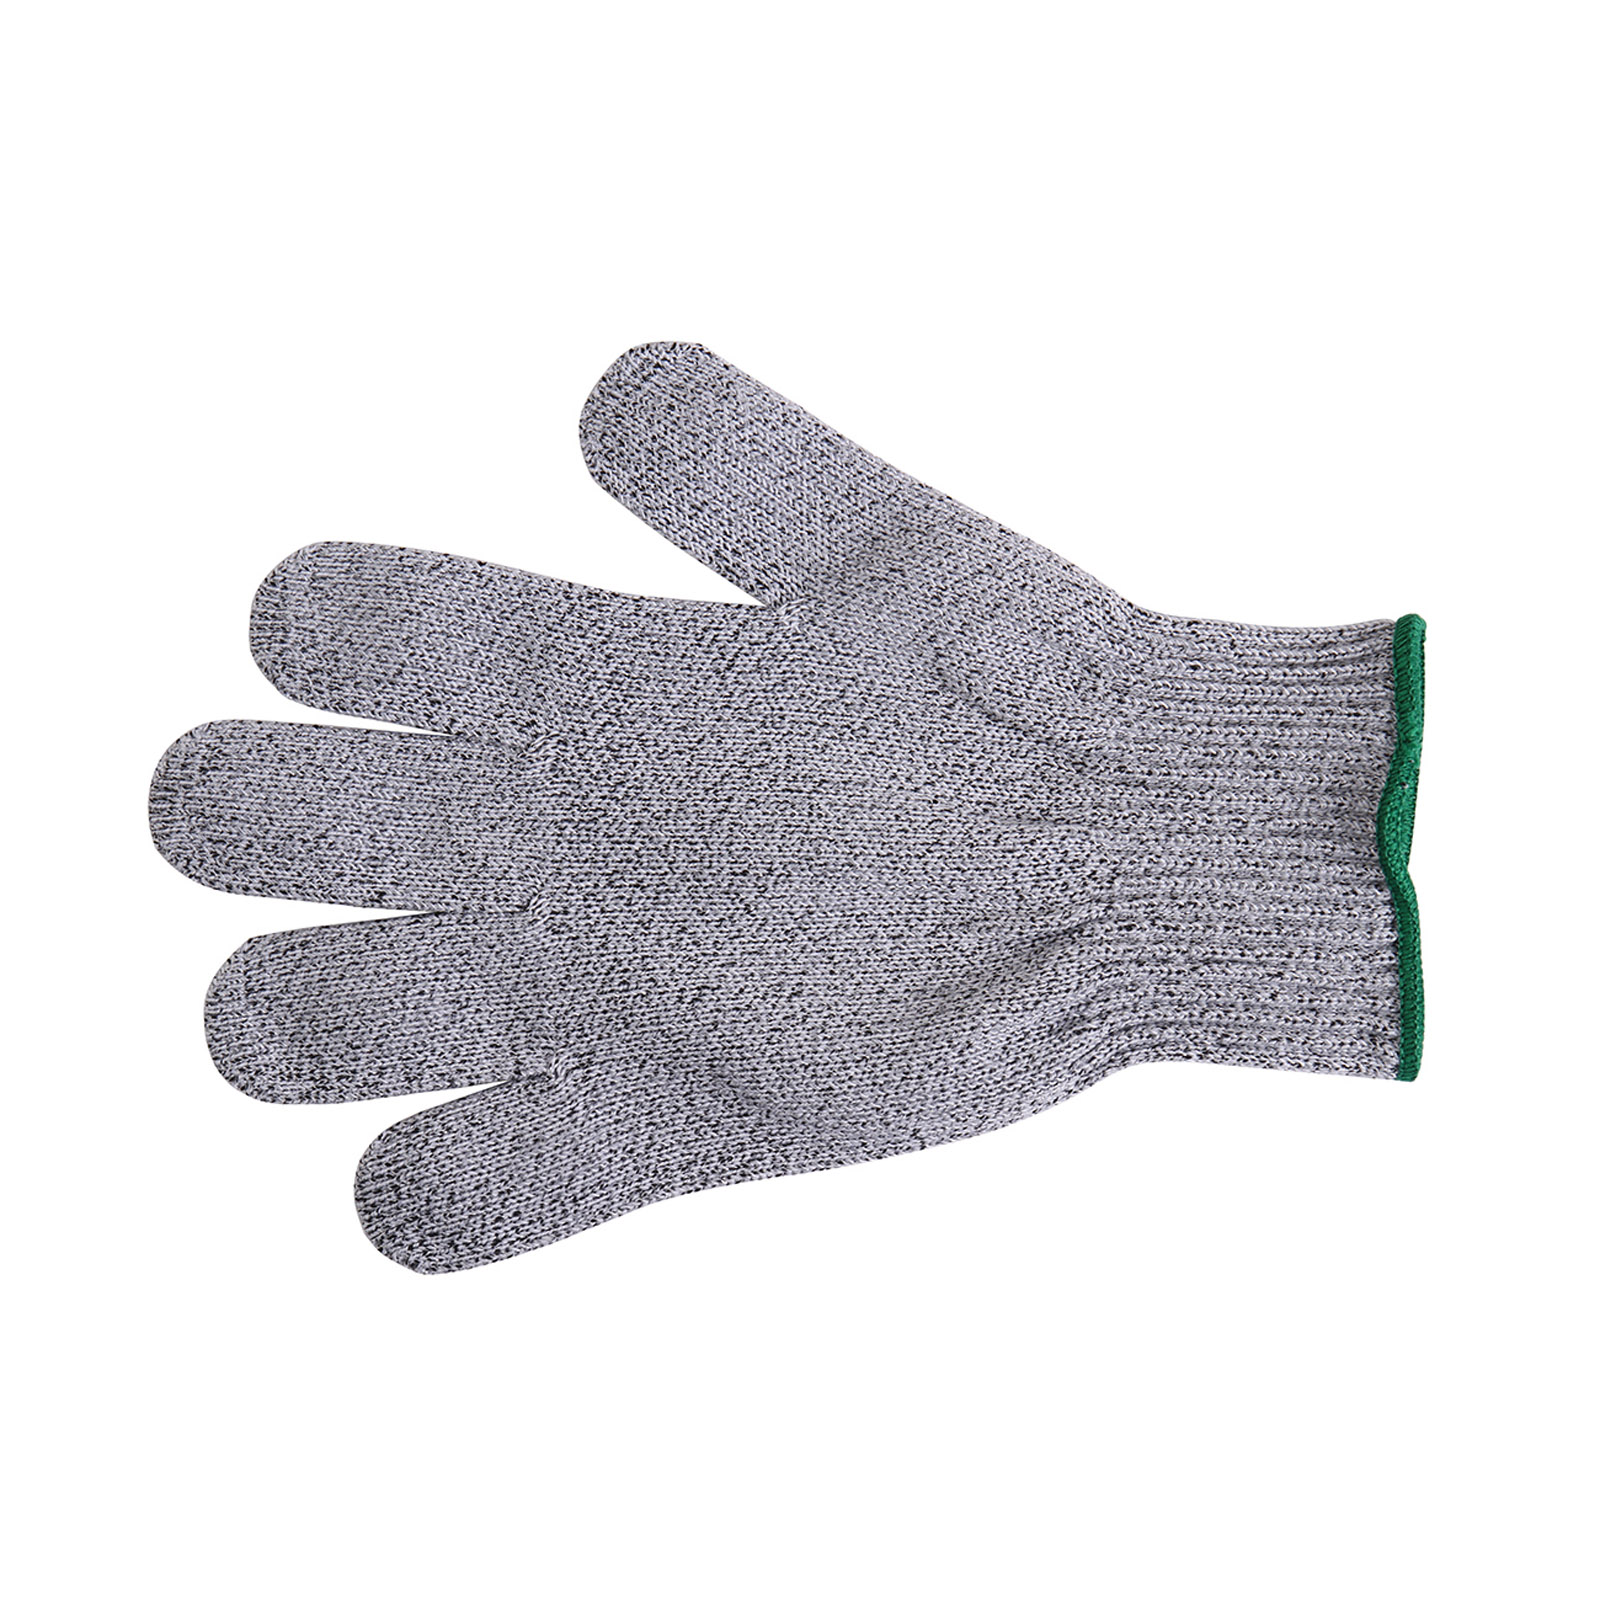 Mercer Culinary M33412M glove, cut resistant